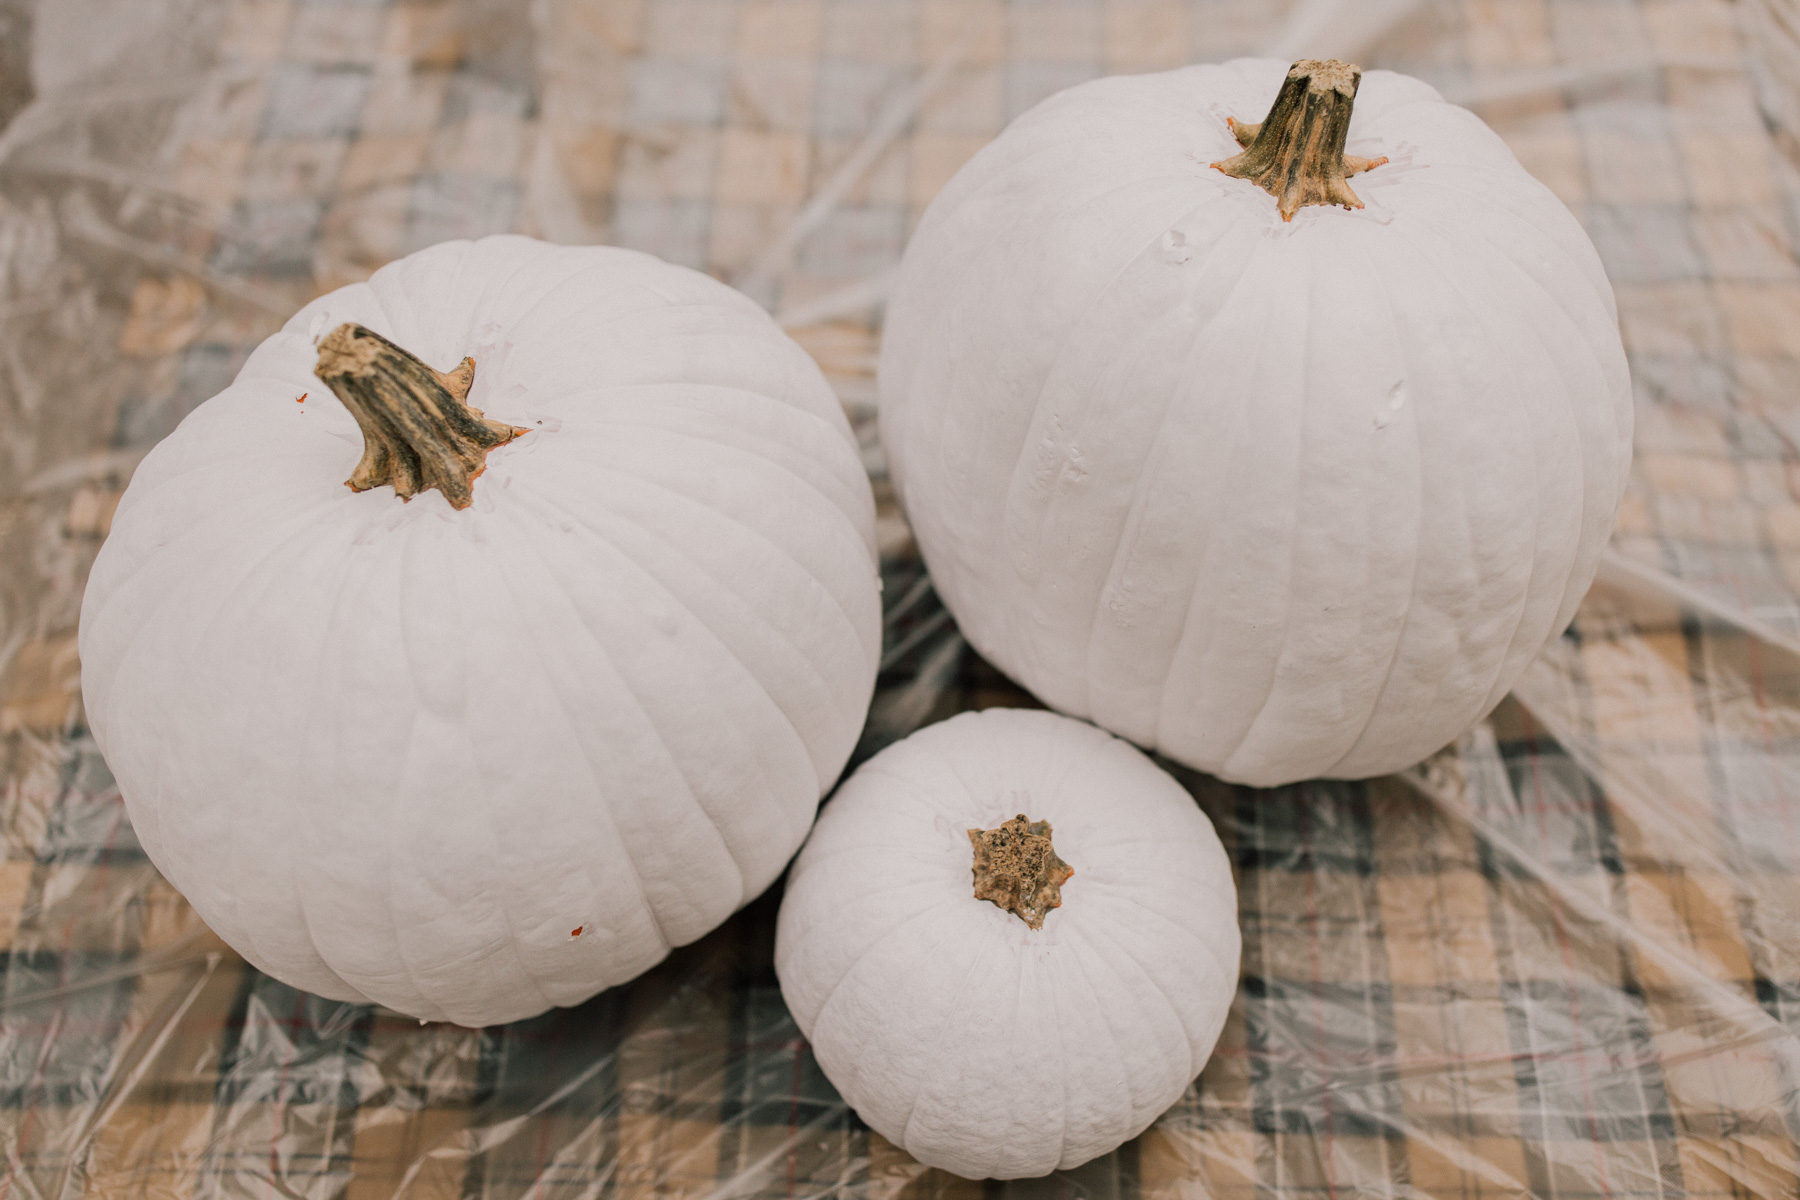 DIY Gingham Pumpkins Tutorial = Step One